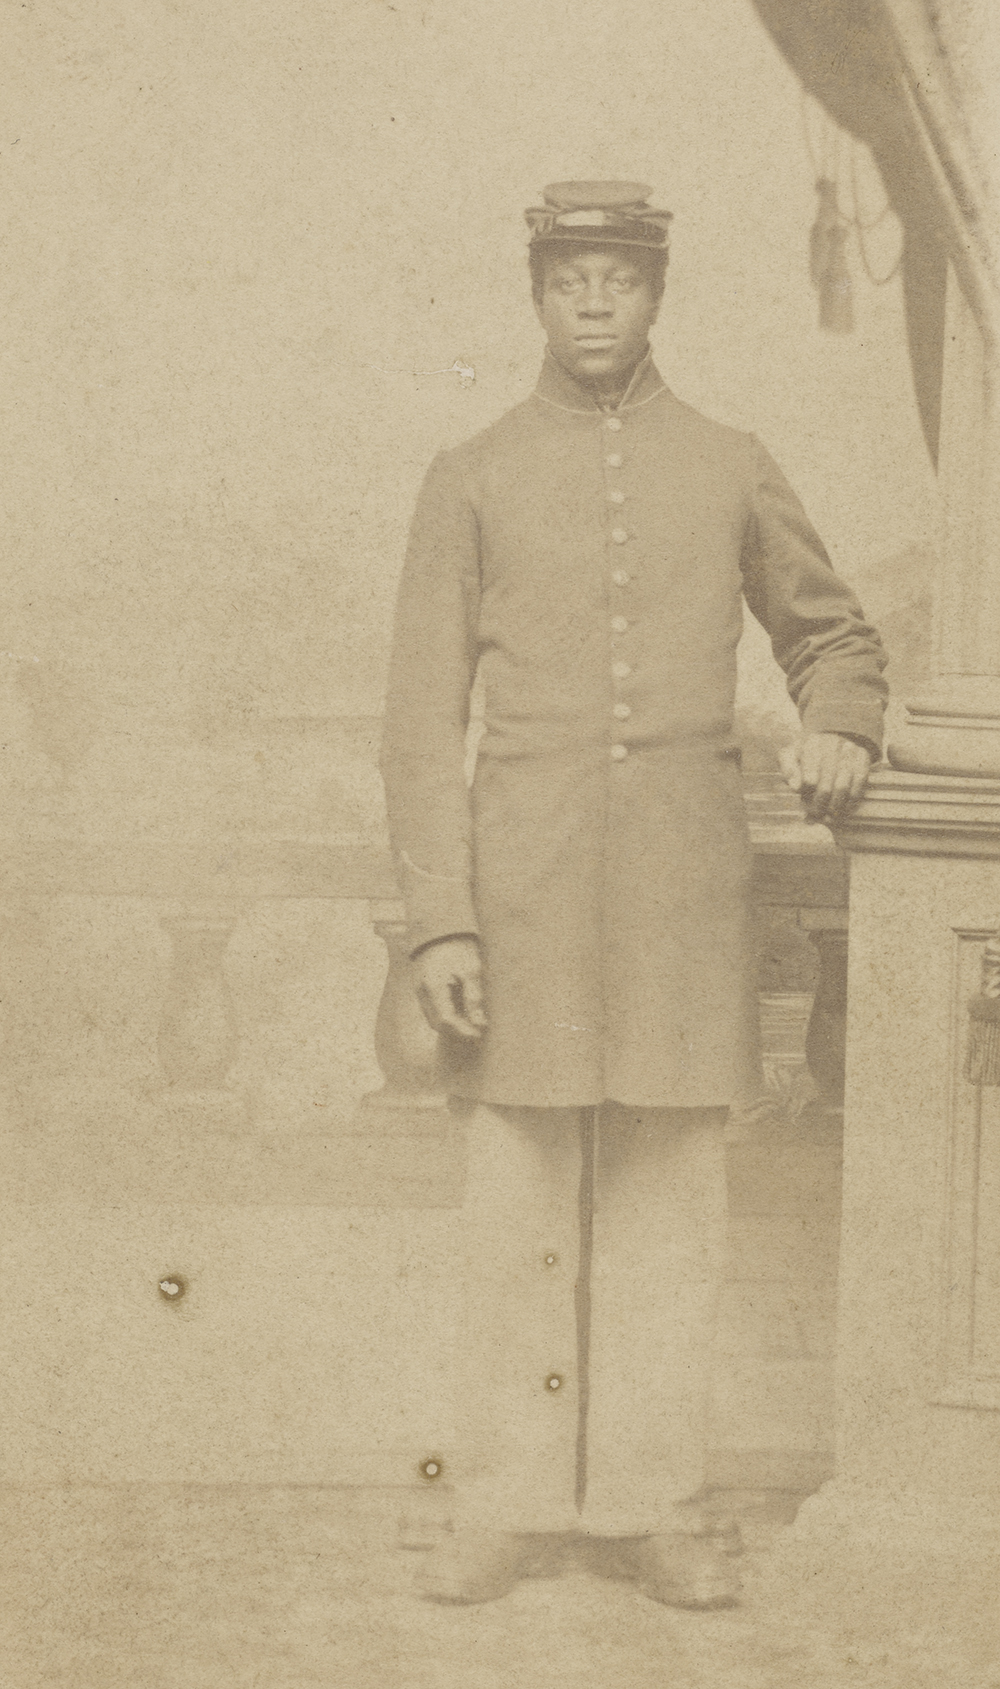 Carte de visite of an unidentified Union soldier, c. 1862. Photograph by Henry C. Cushing.